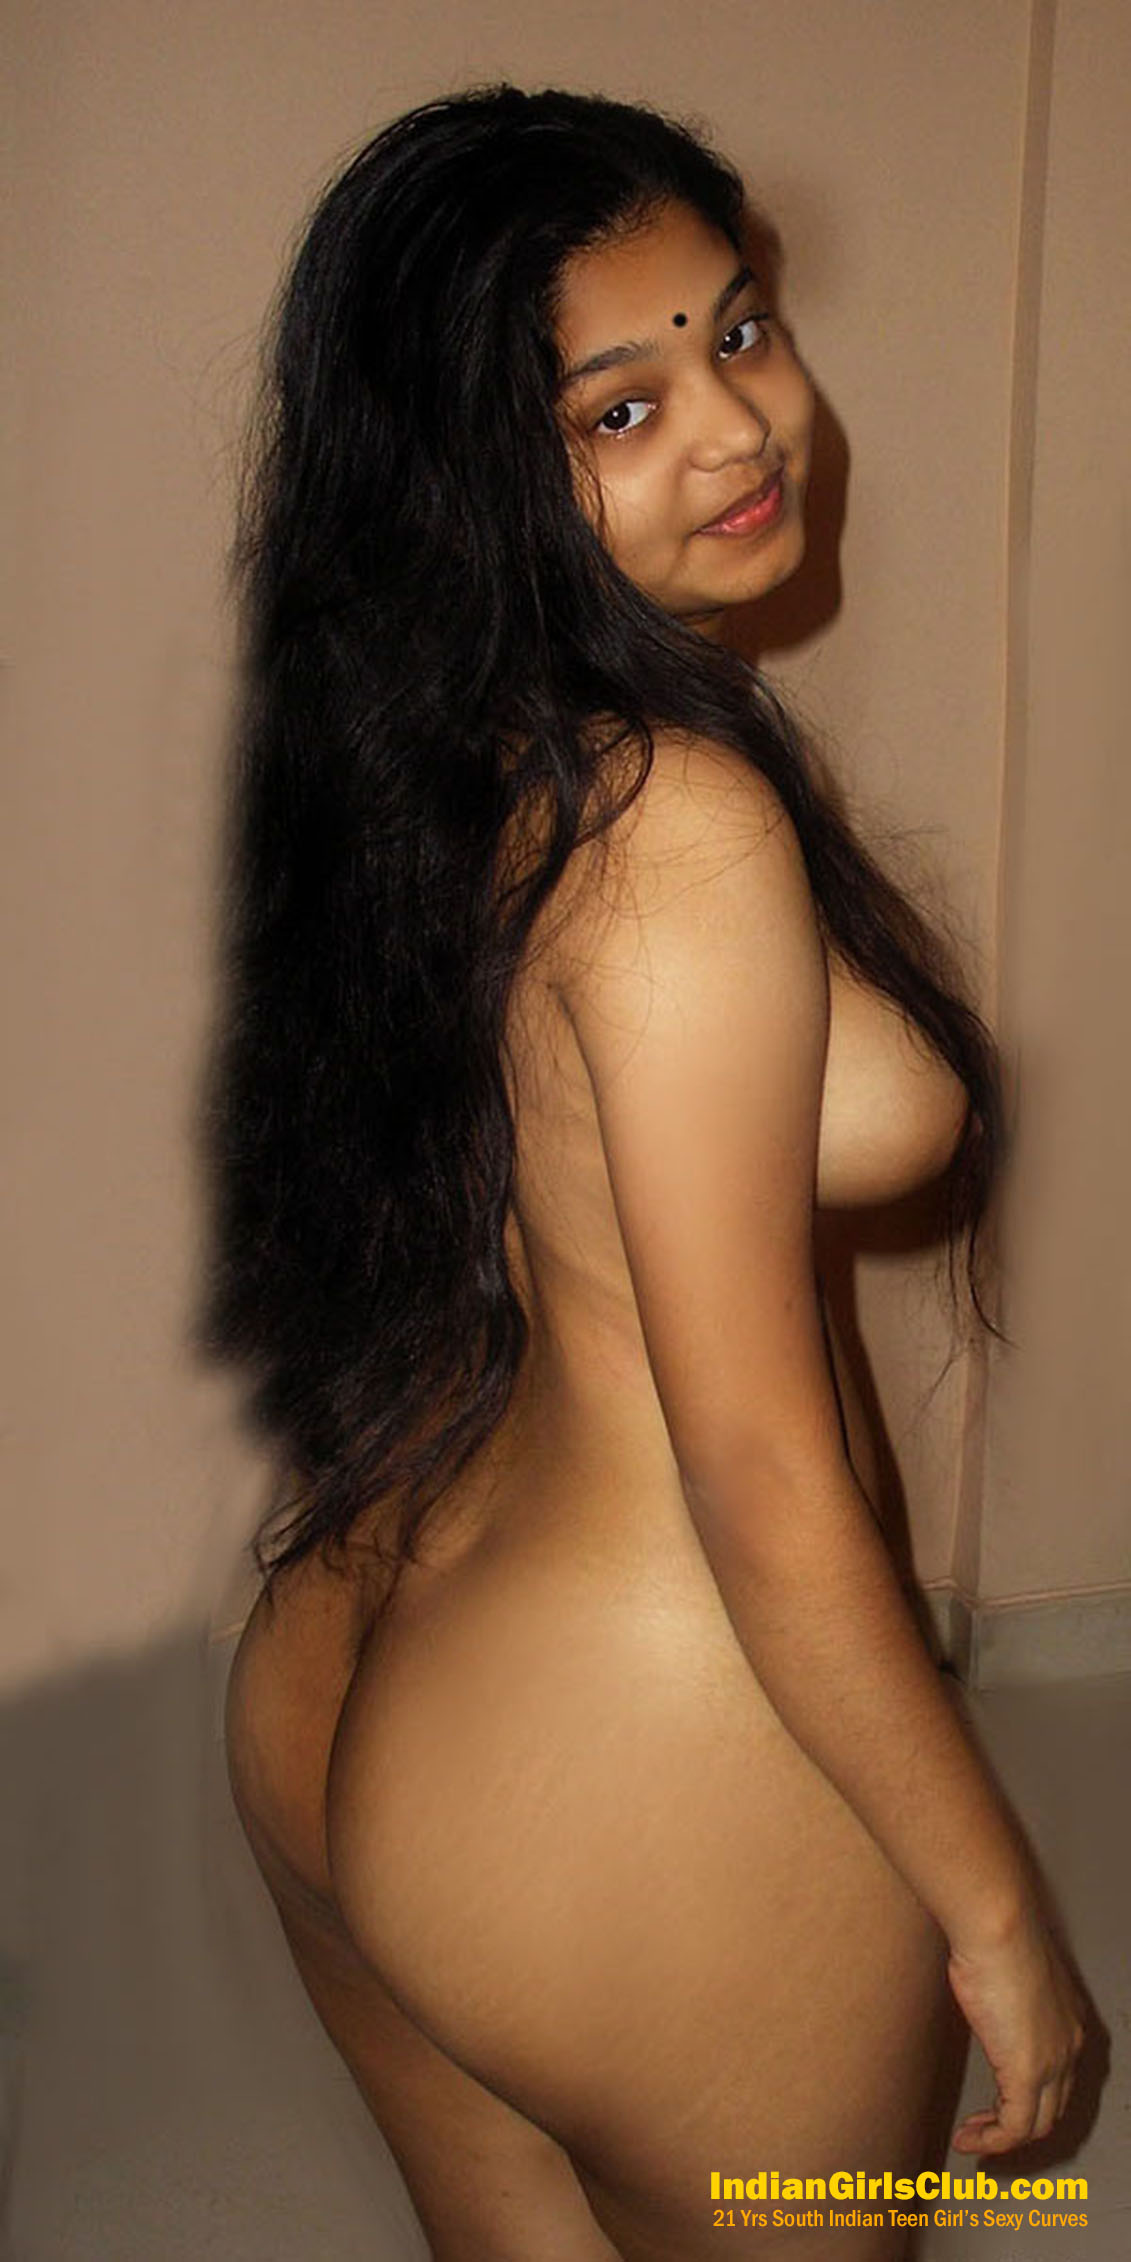 Nude indian girls hot